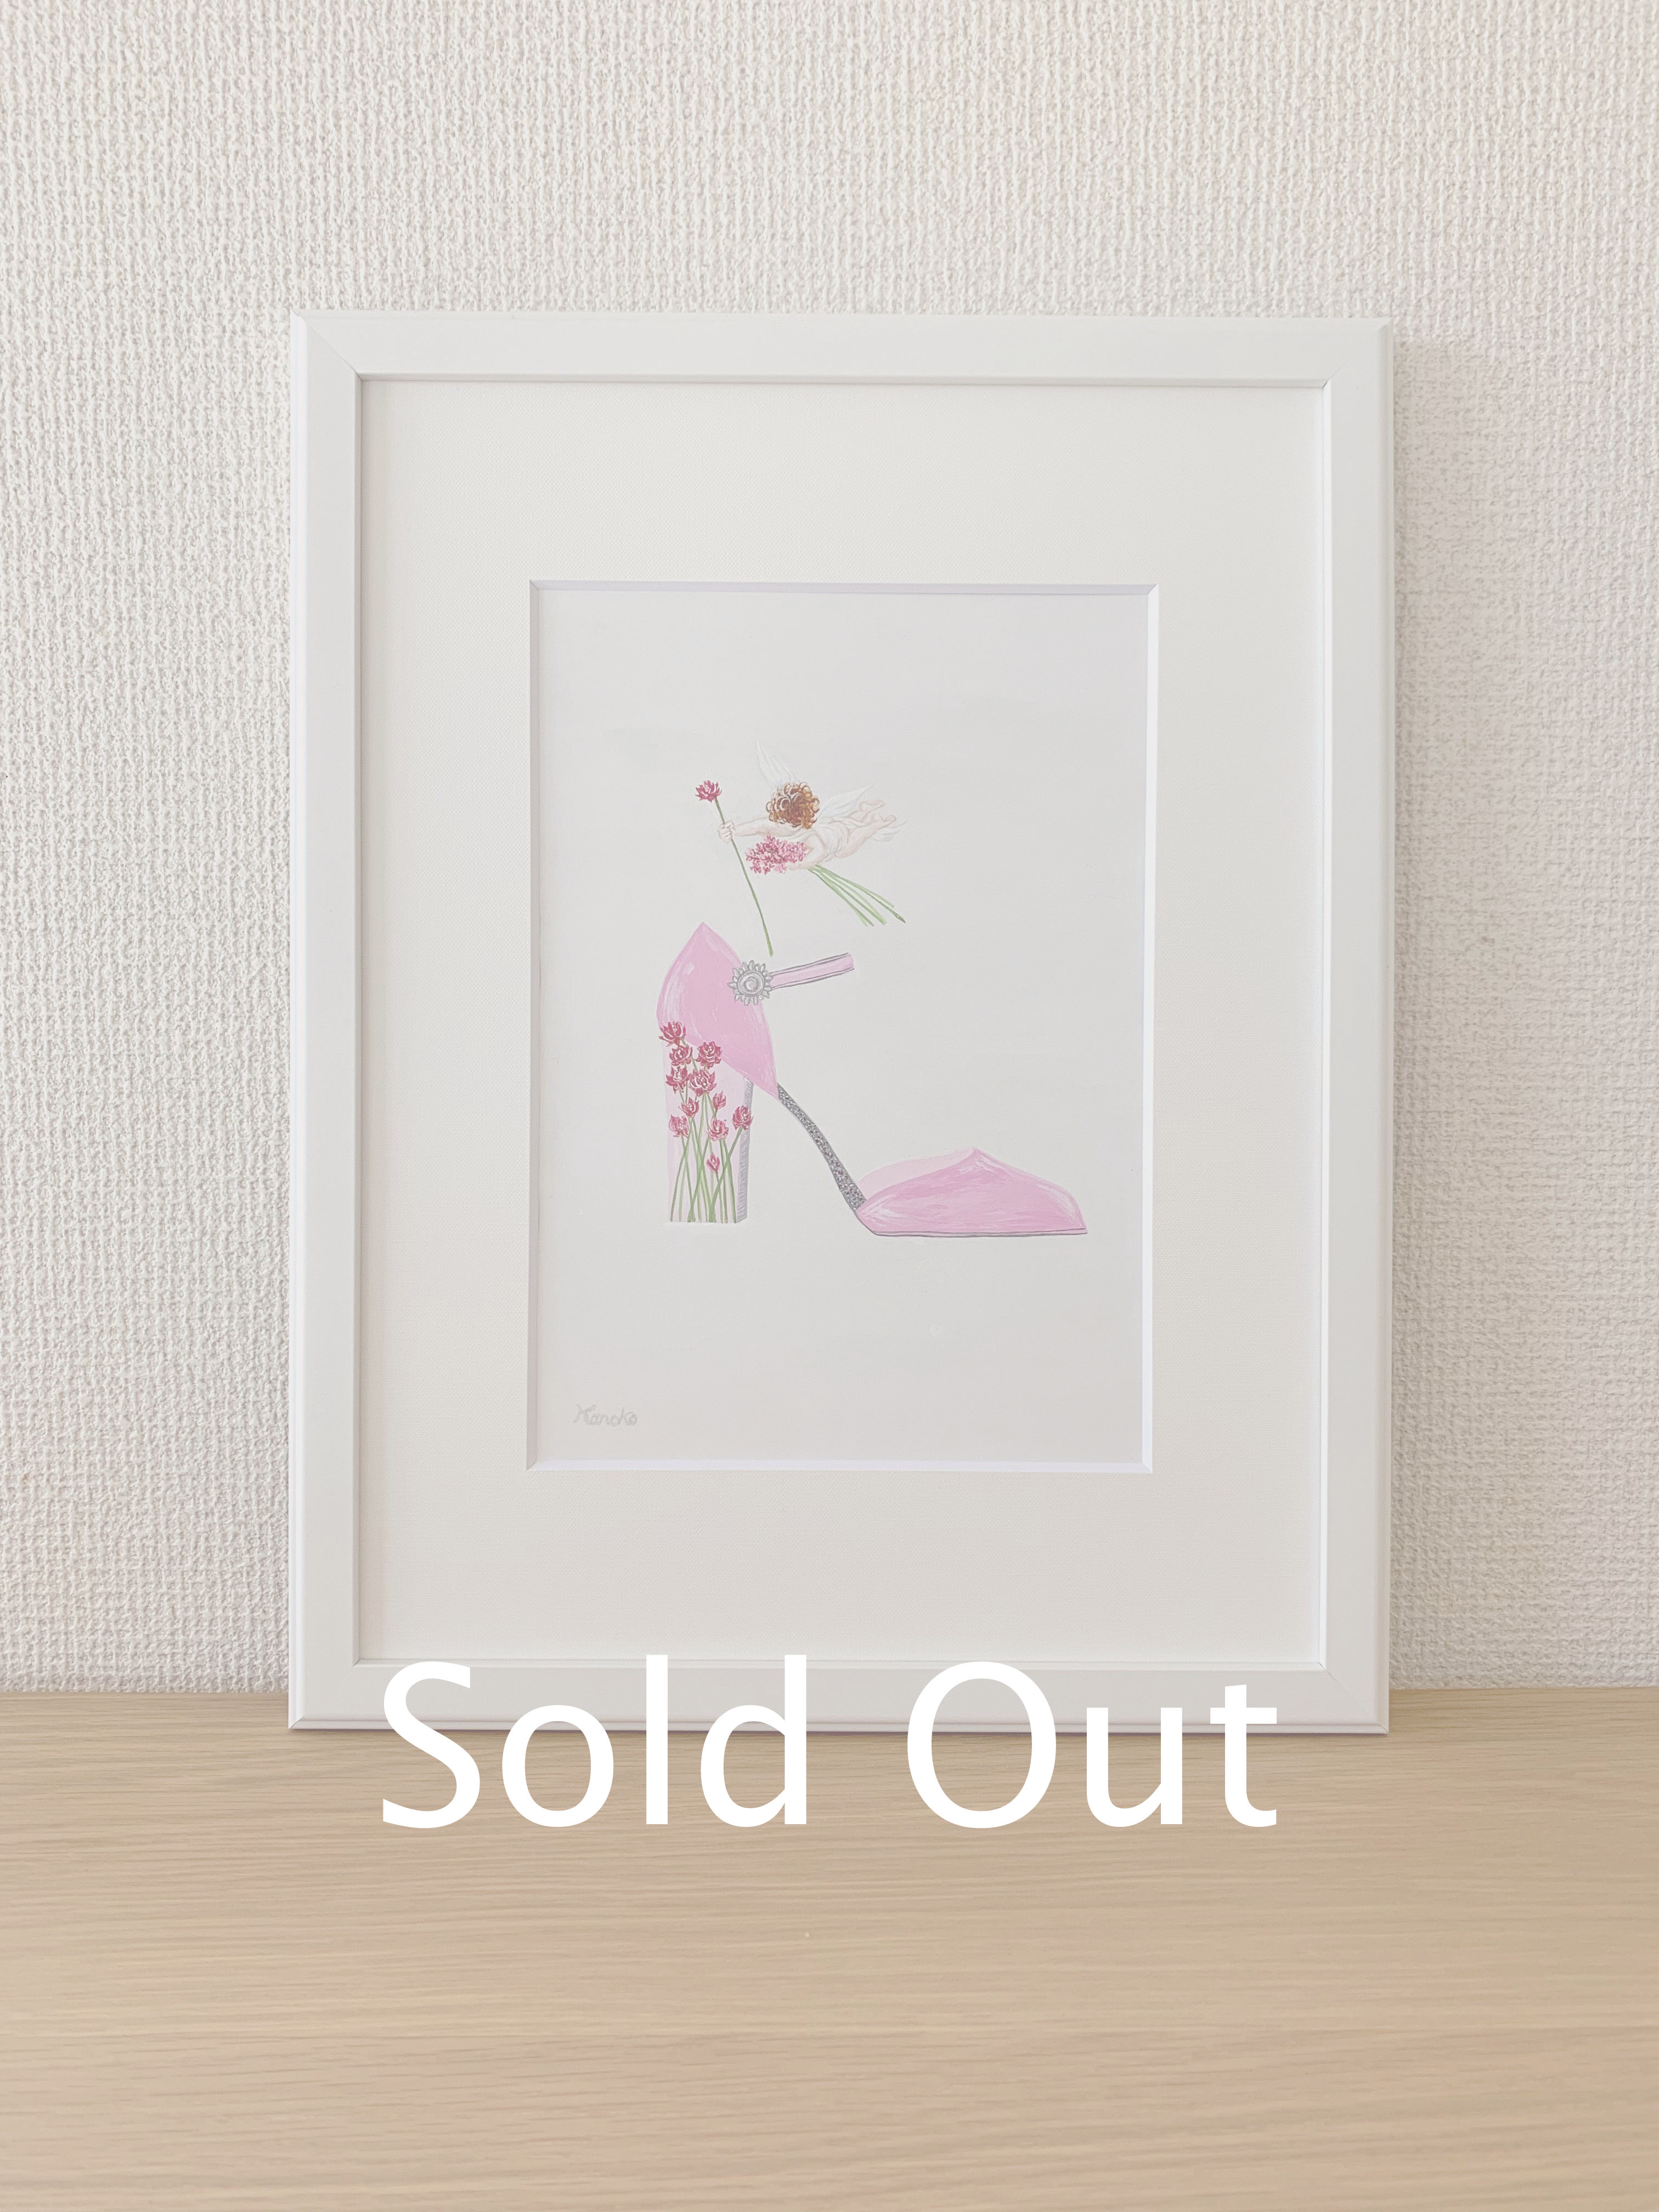 Love sold out